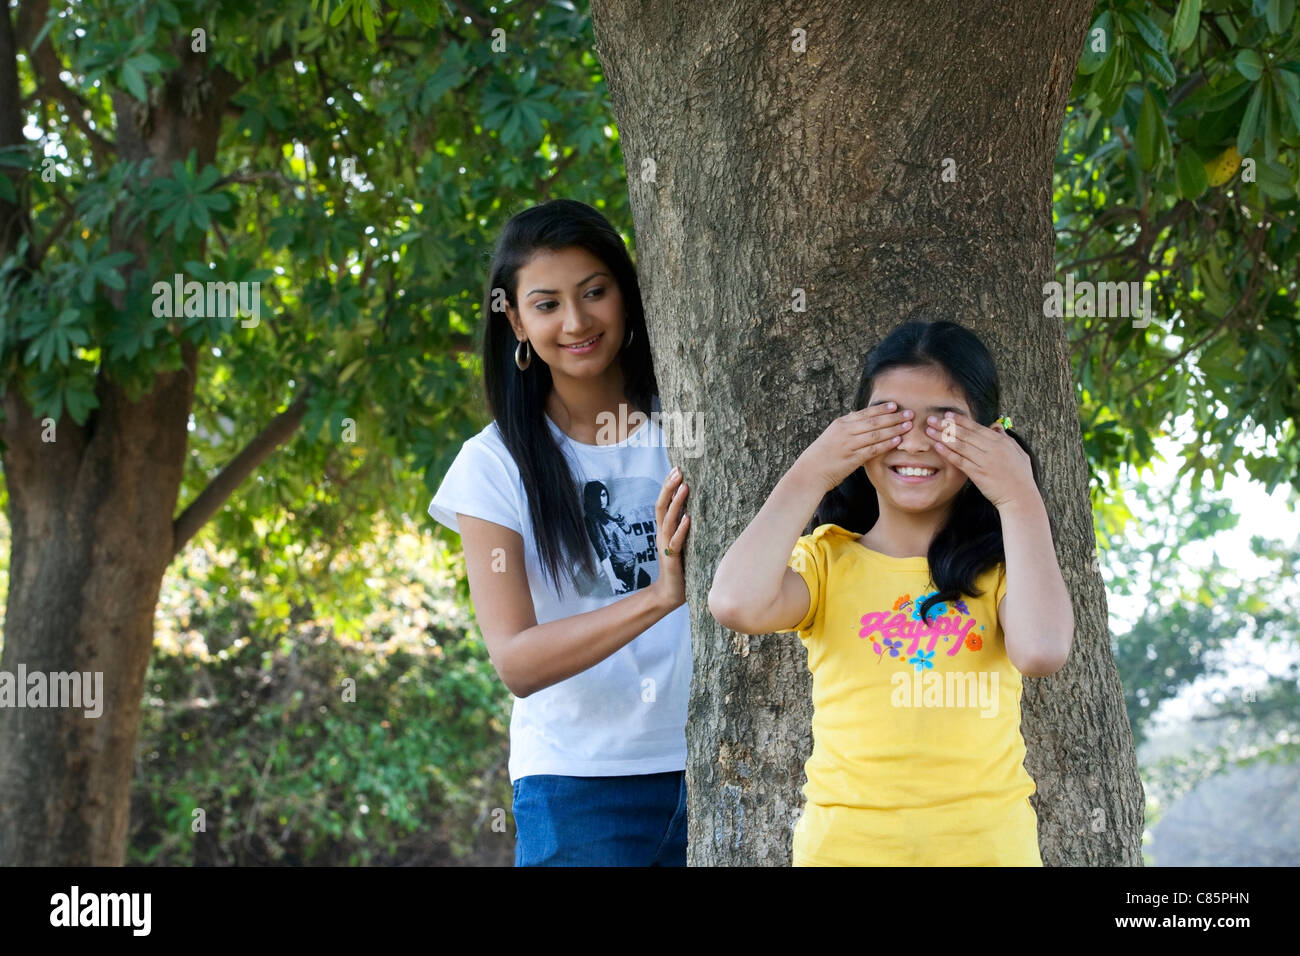 Mother and daughter playing hide and seek - Stock Image